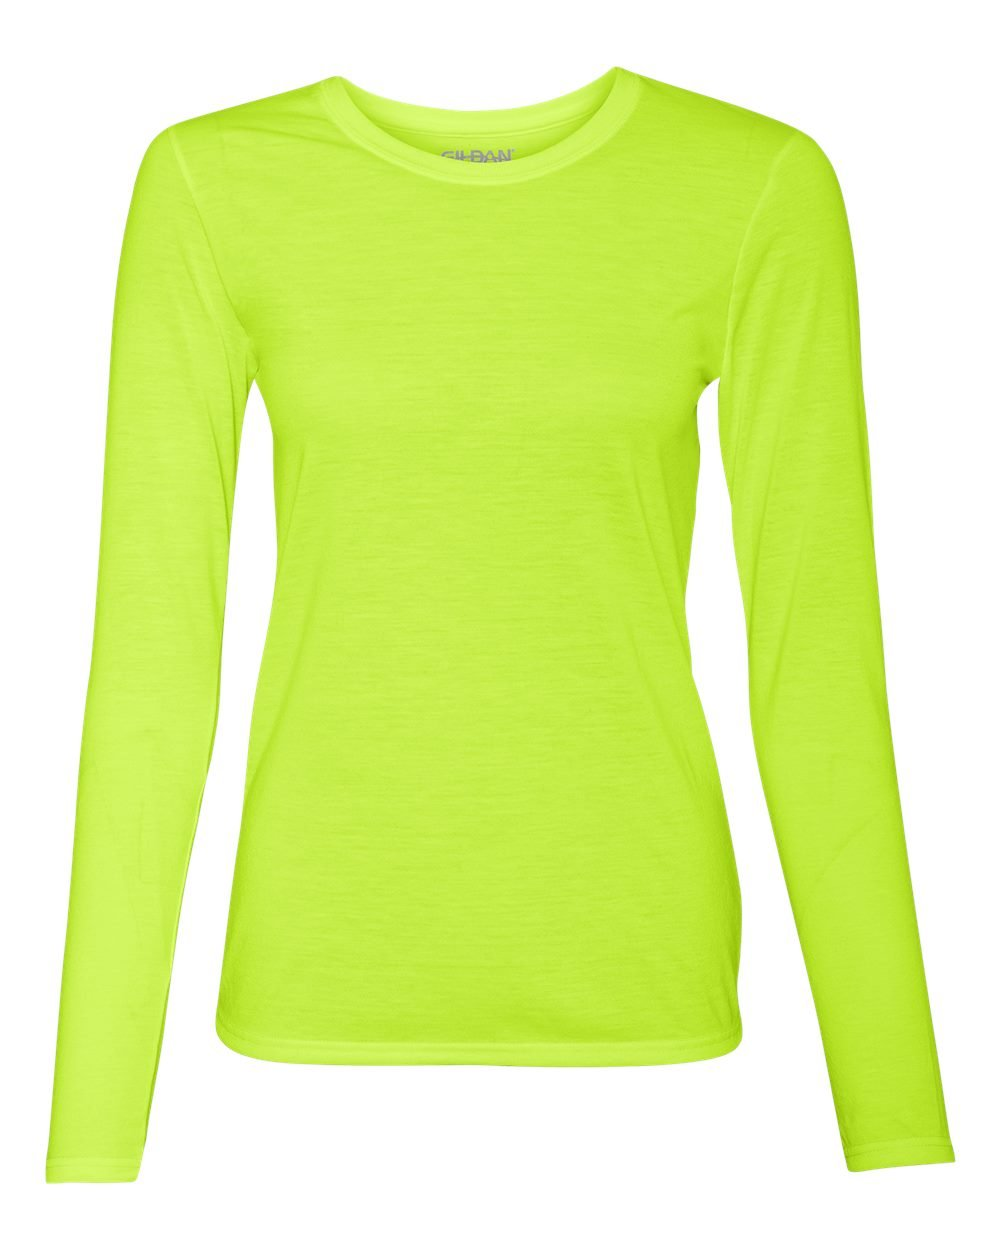 Ladies core performance long sleeve t-shirt. Gildan M29732